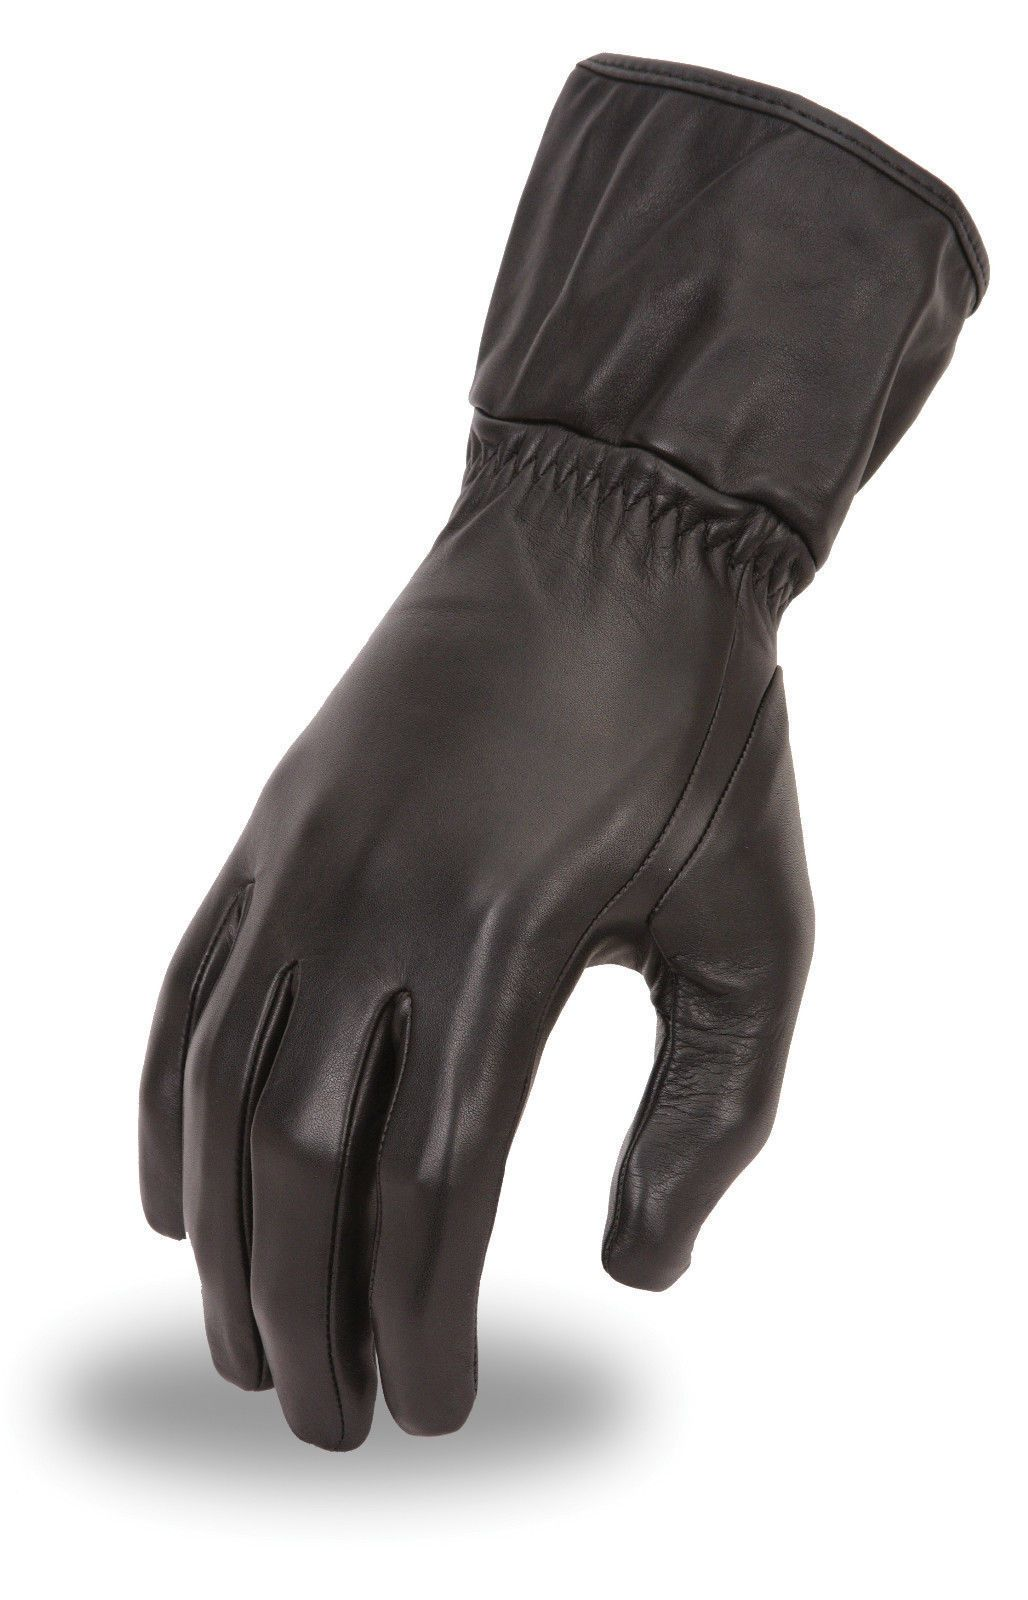 Leather gauntlet driving gloves - Details About Womens Leather Motorcycle Gauntlet Riding Gloves W Cinch Tight Wrist Fi122gl